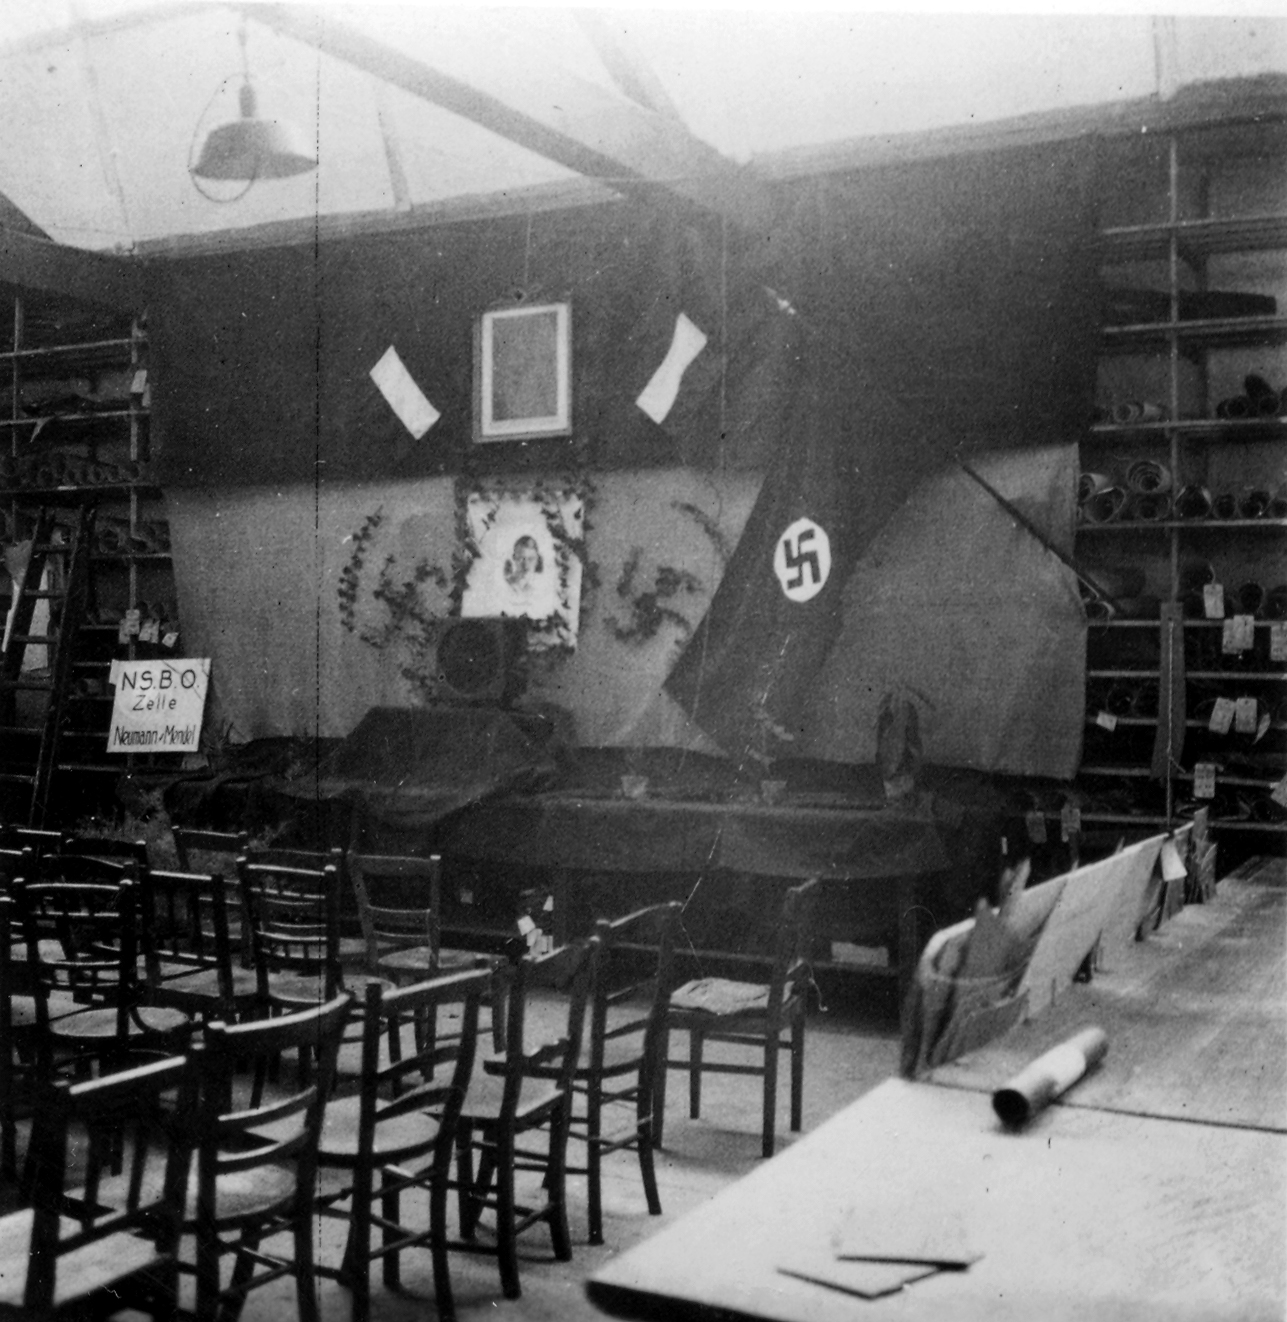 Sala de reuniones de la compañía, con la bandera nazi al fondo. © Wiener Library Photo Collection. WL8043.